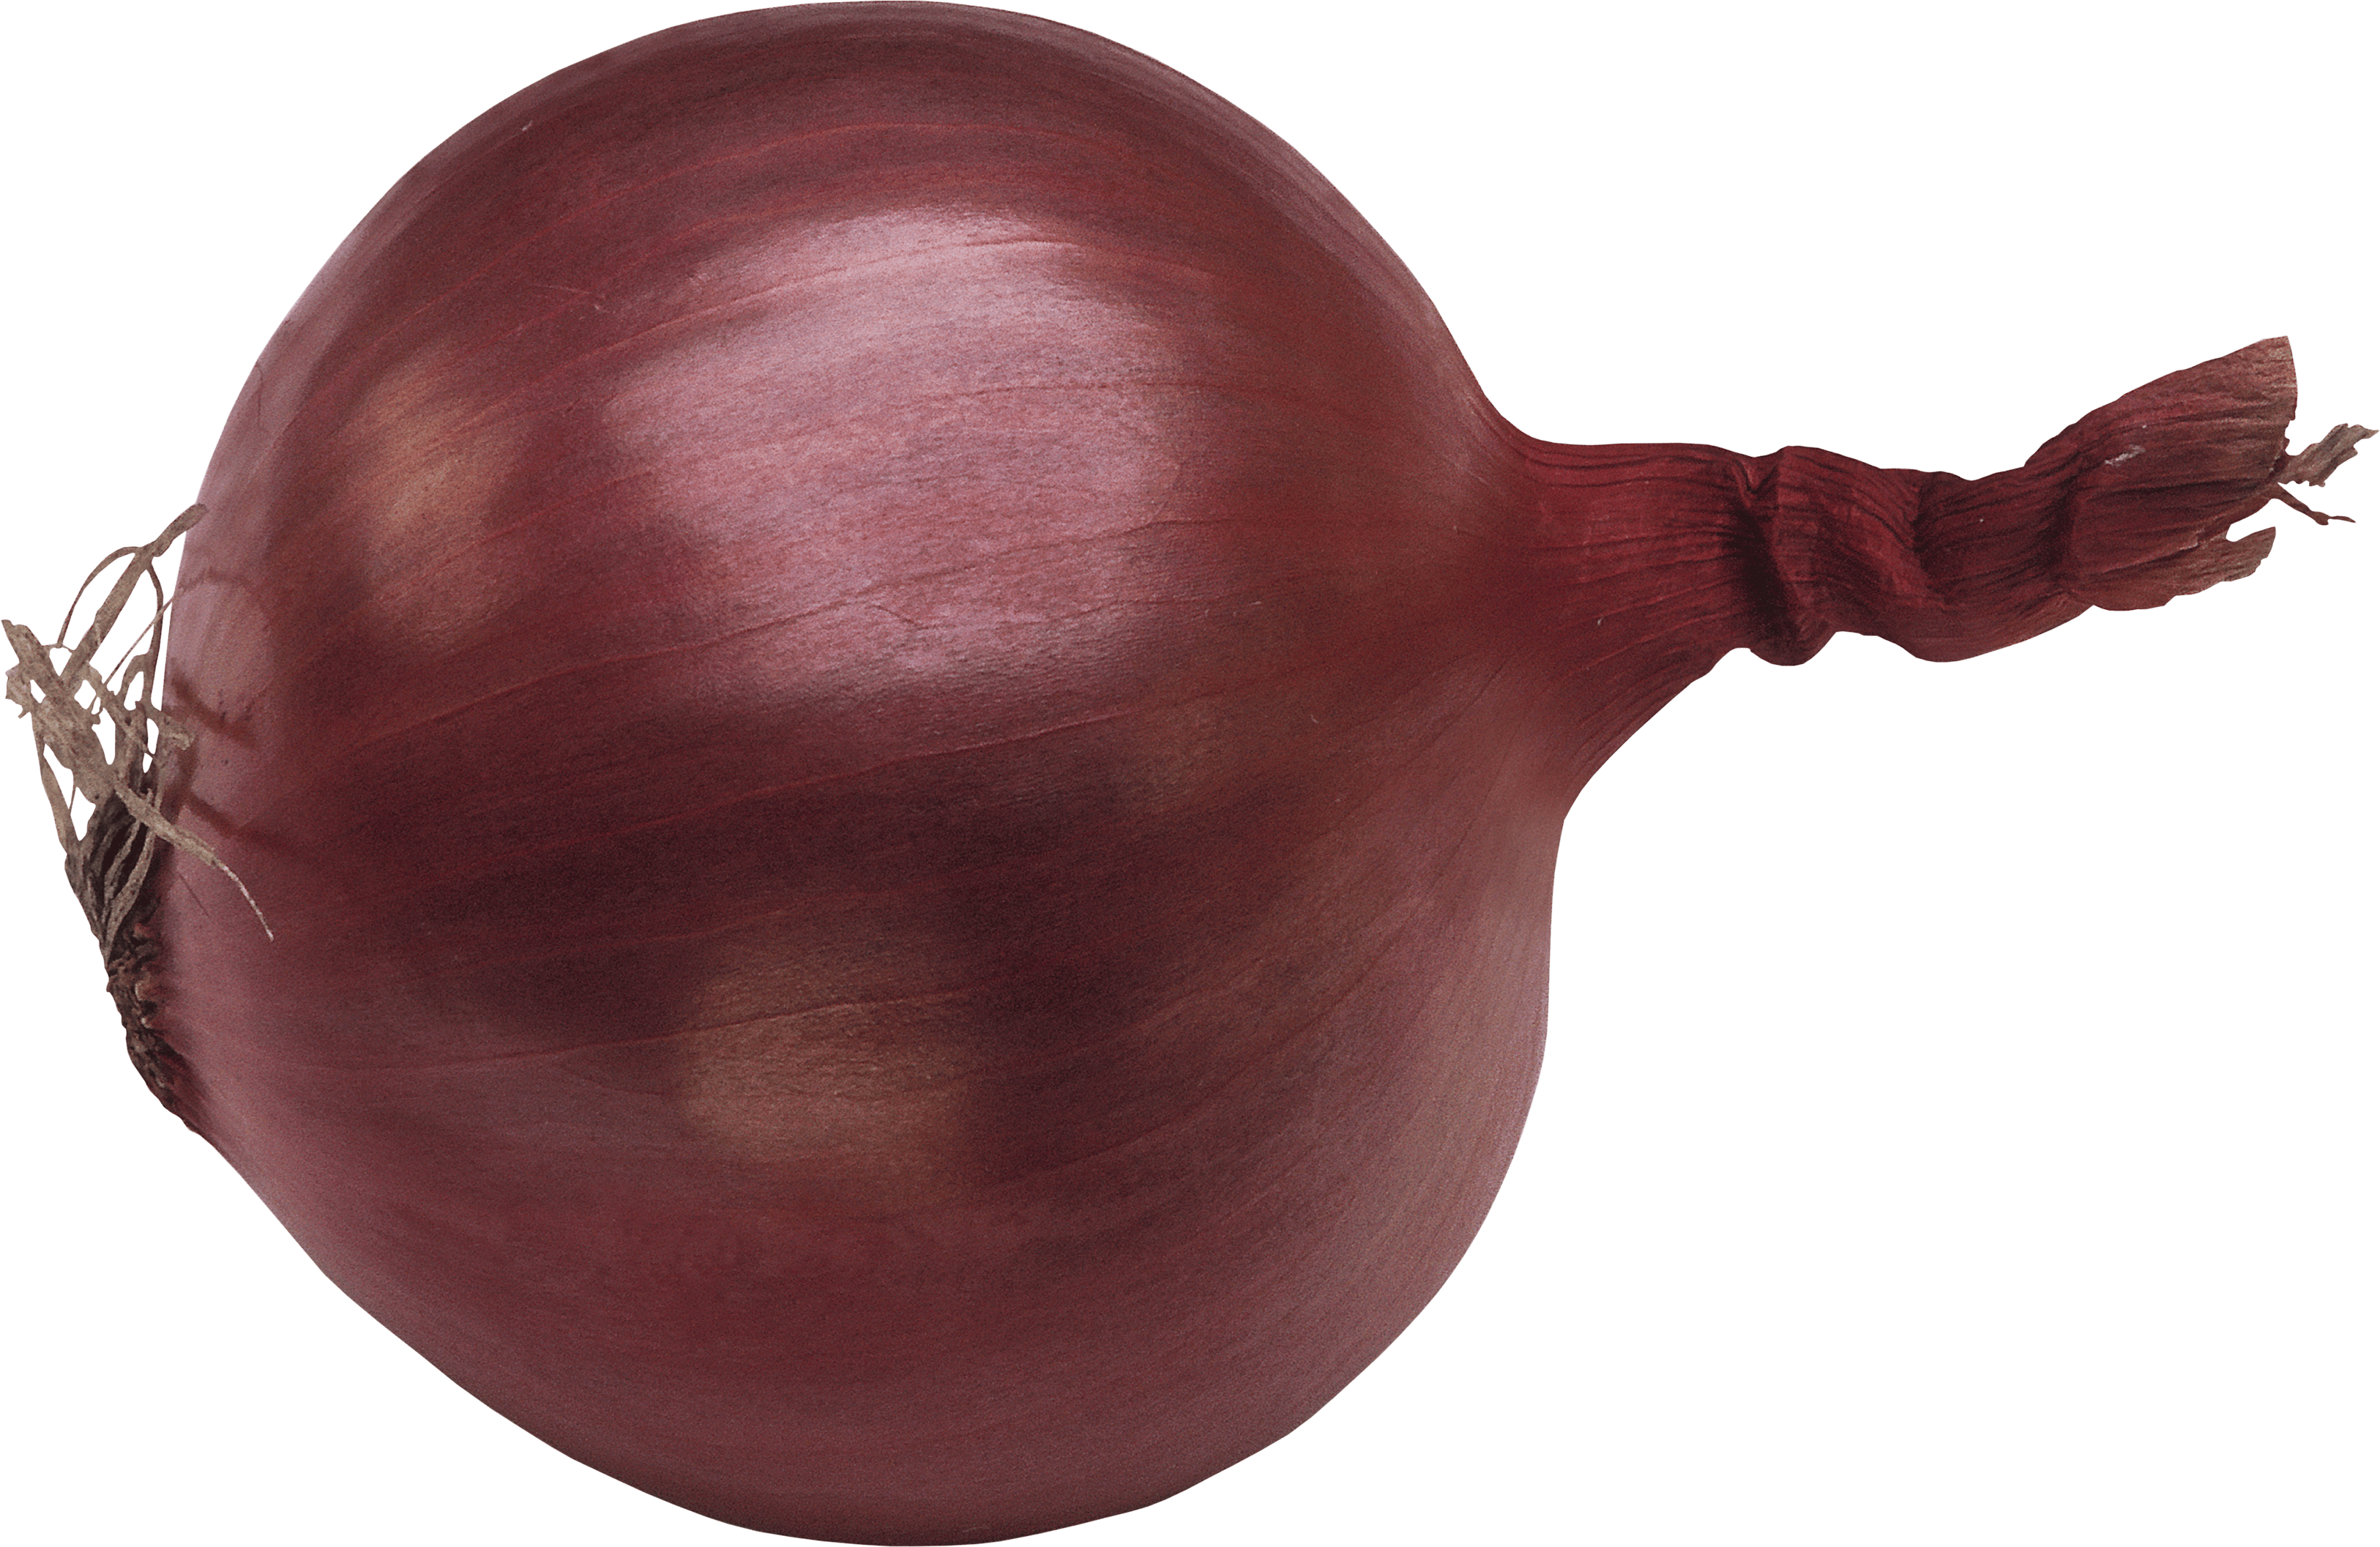 download onion png image png image pngimg #22177